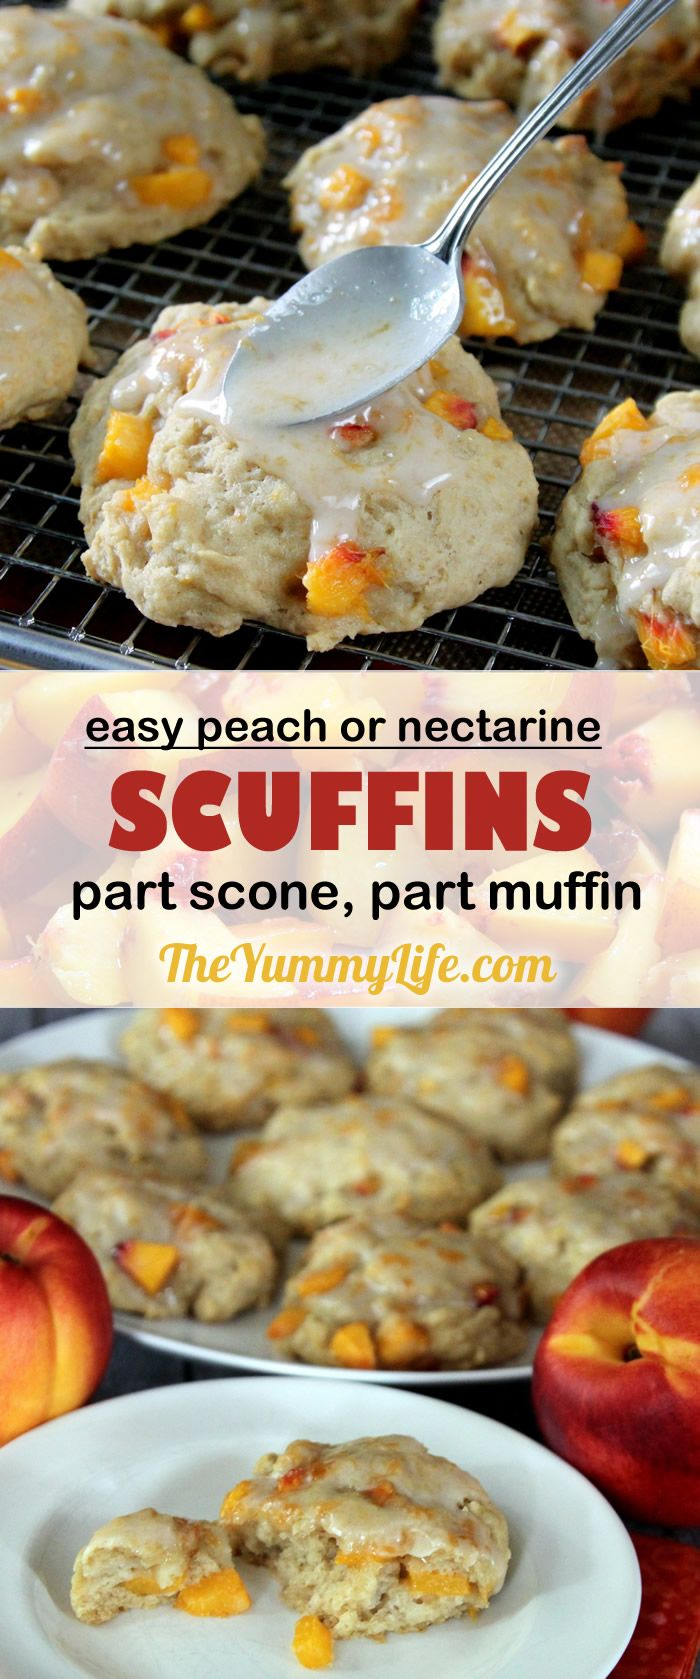 Peach or Nectarine Drop Scuffins are a cross between a scone and a muffin. Made with a quick, honey-sweetened, yogurt batter that is dropped in mounds on a baking sheet and ready in 30 minutes, start to finish. From TheYummyLife.com